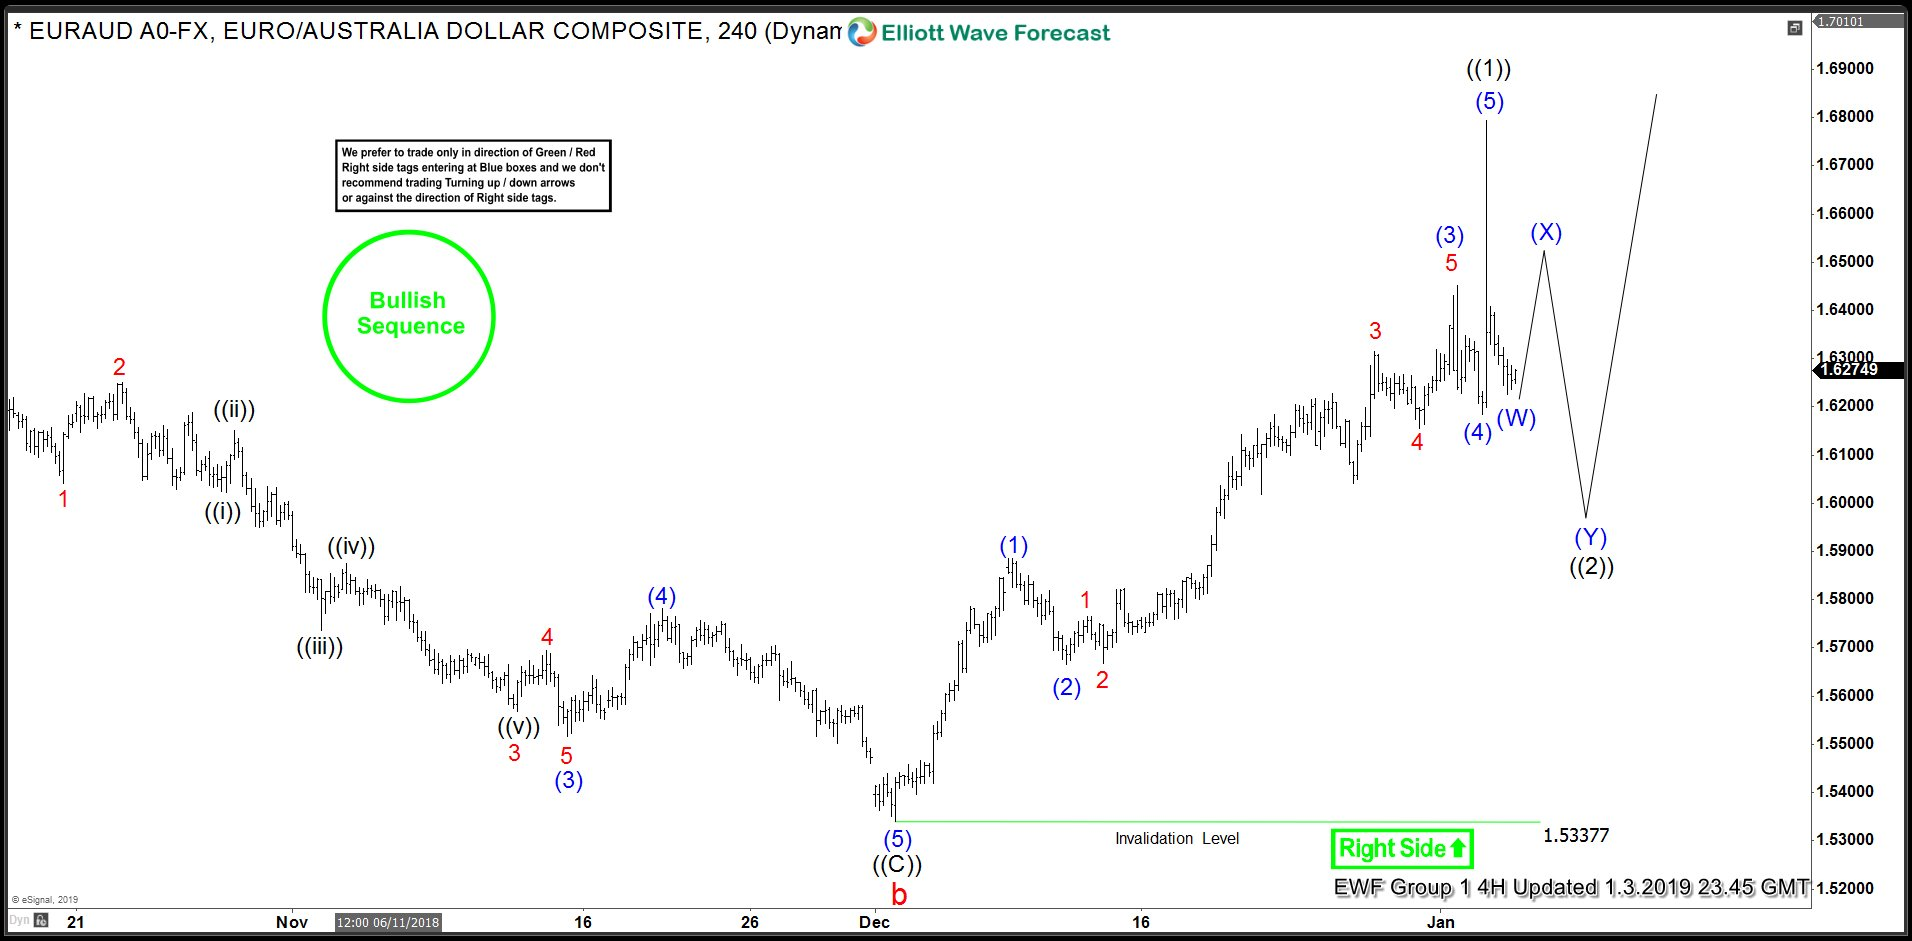 EURAUD Elliott Wave View looking for further upside